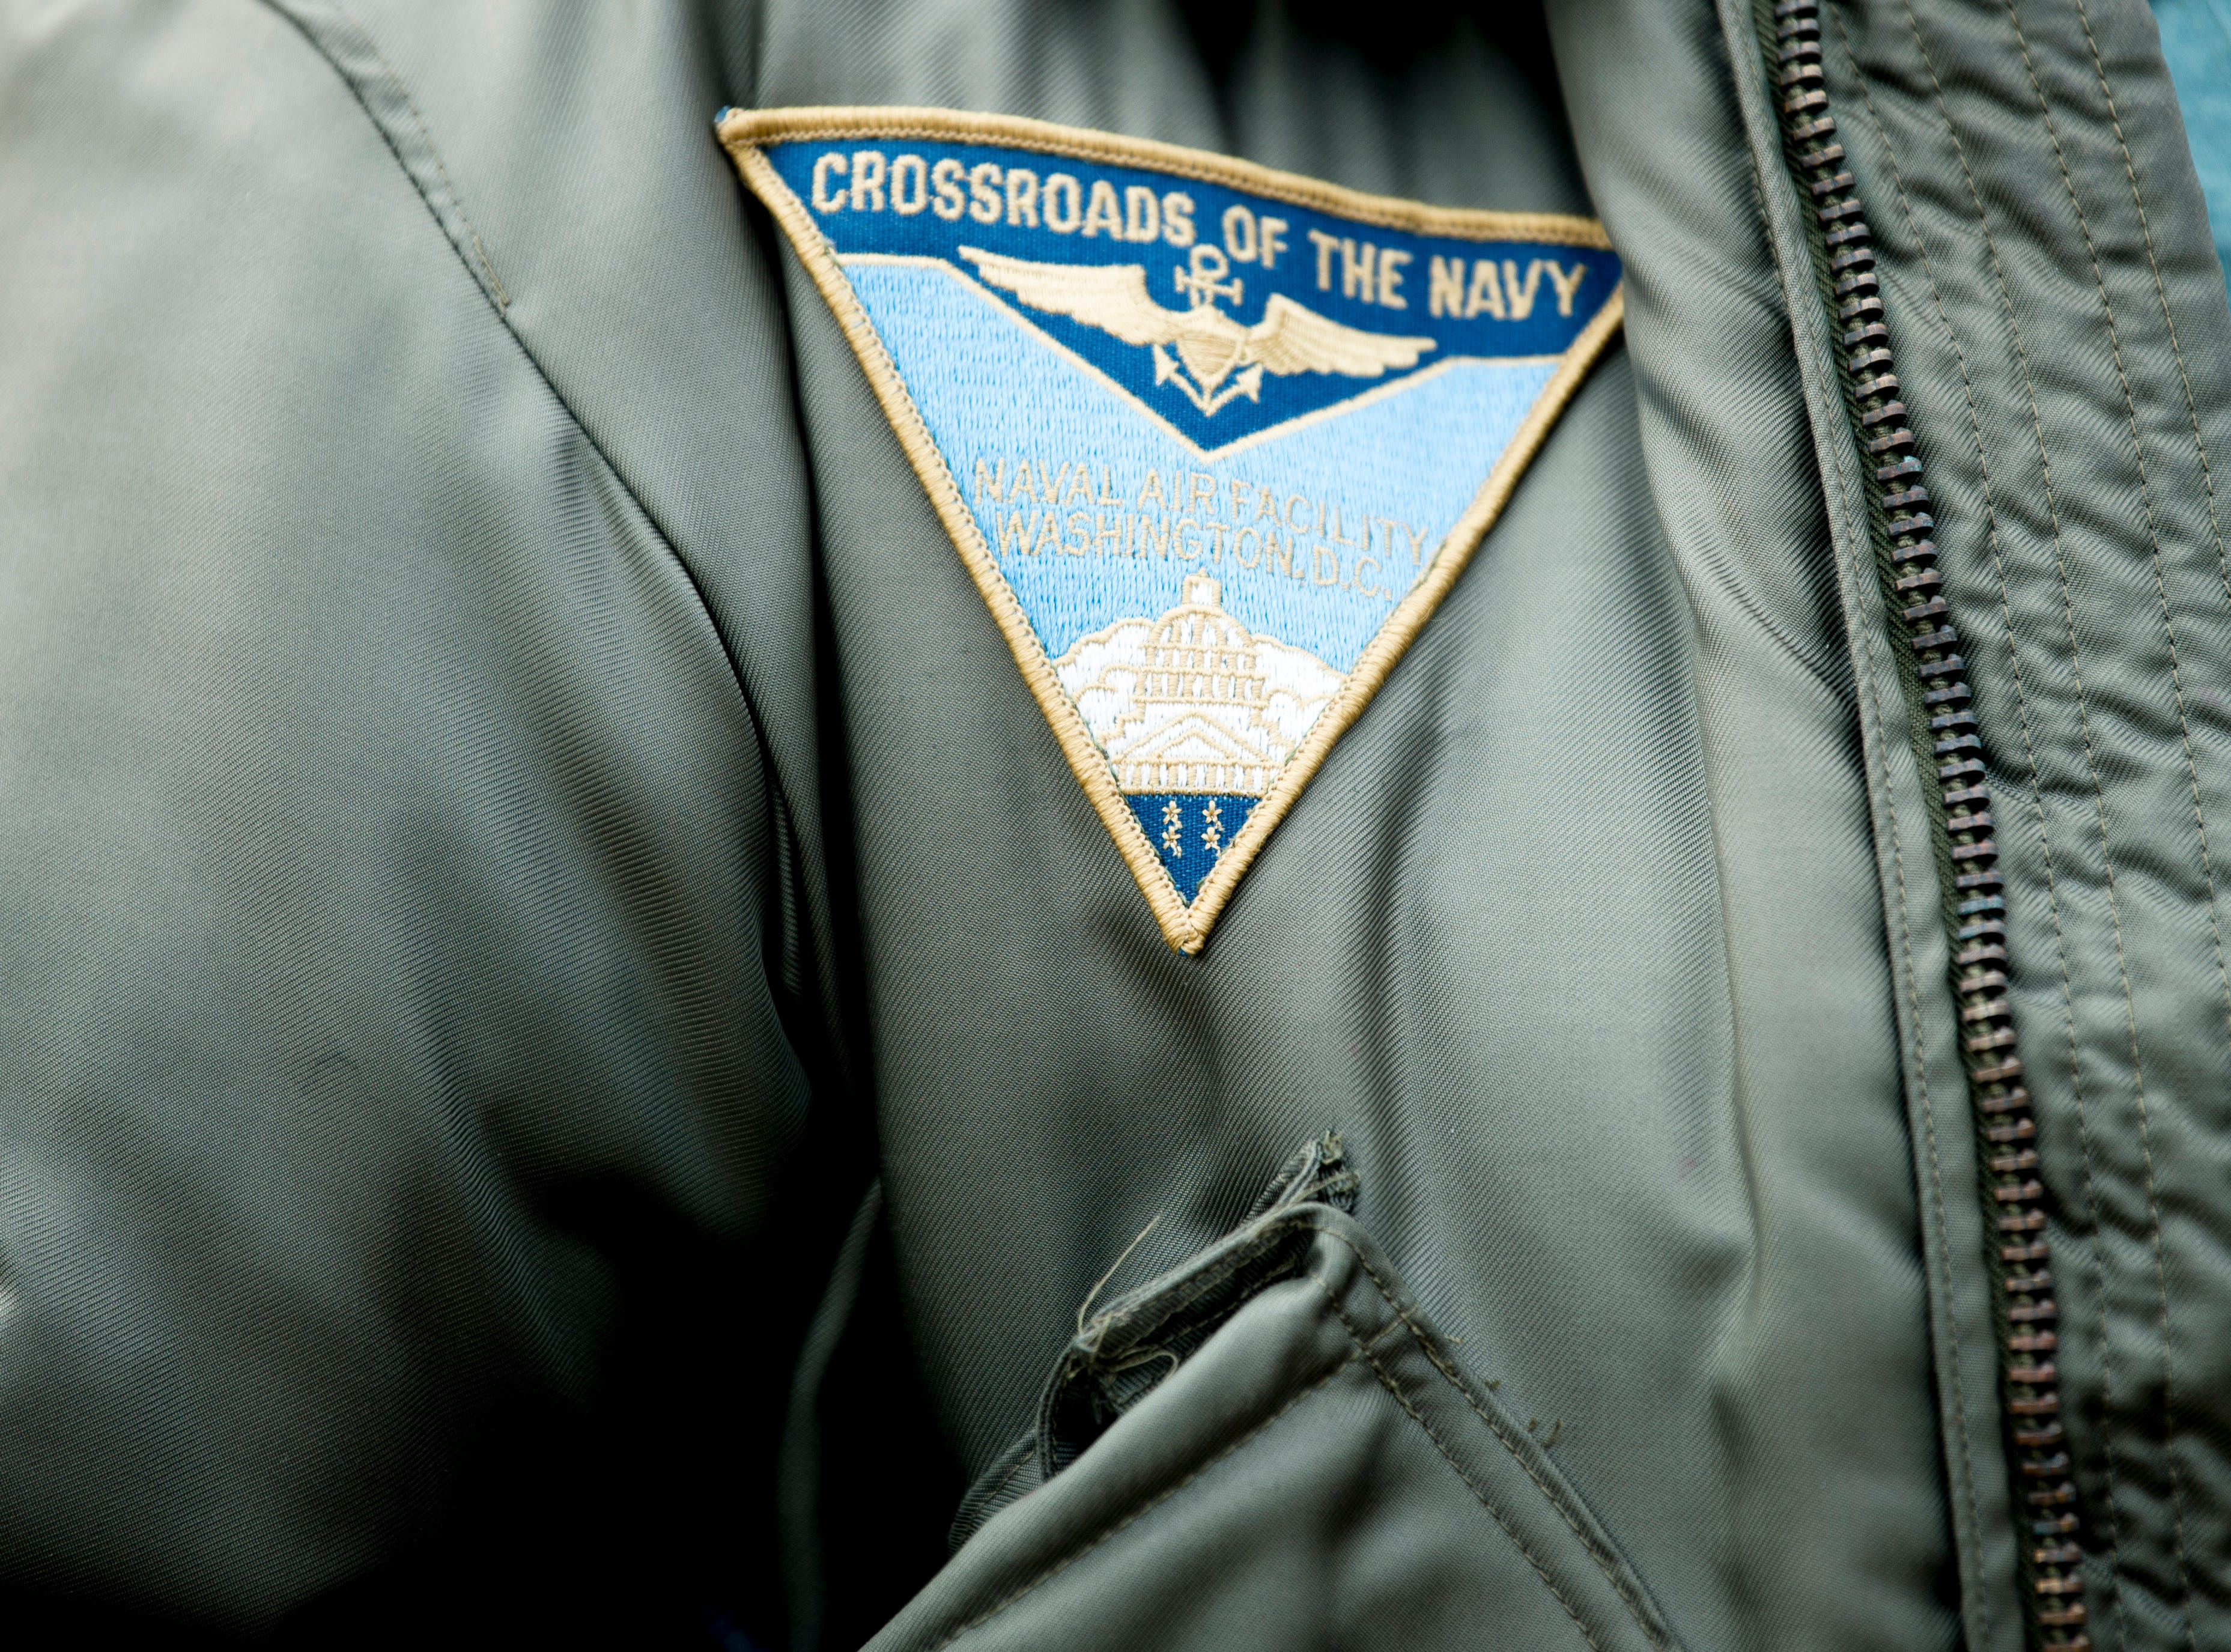 "Chris Giza, the second female fighter pilot in the Navy, wears a ""Crossroads of the Navy"" patch on her jacket during a funeral service for Rosemary Mariner, the US Navy's first female fighter pilot, at Norris United Methodist Church in Norris, Tennessee on Saturday, February 2, 2019. Mariner died January 24th of cancer."